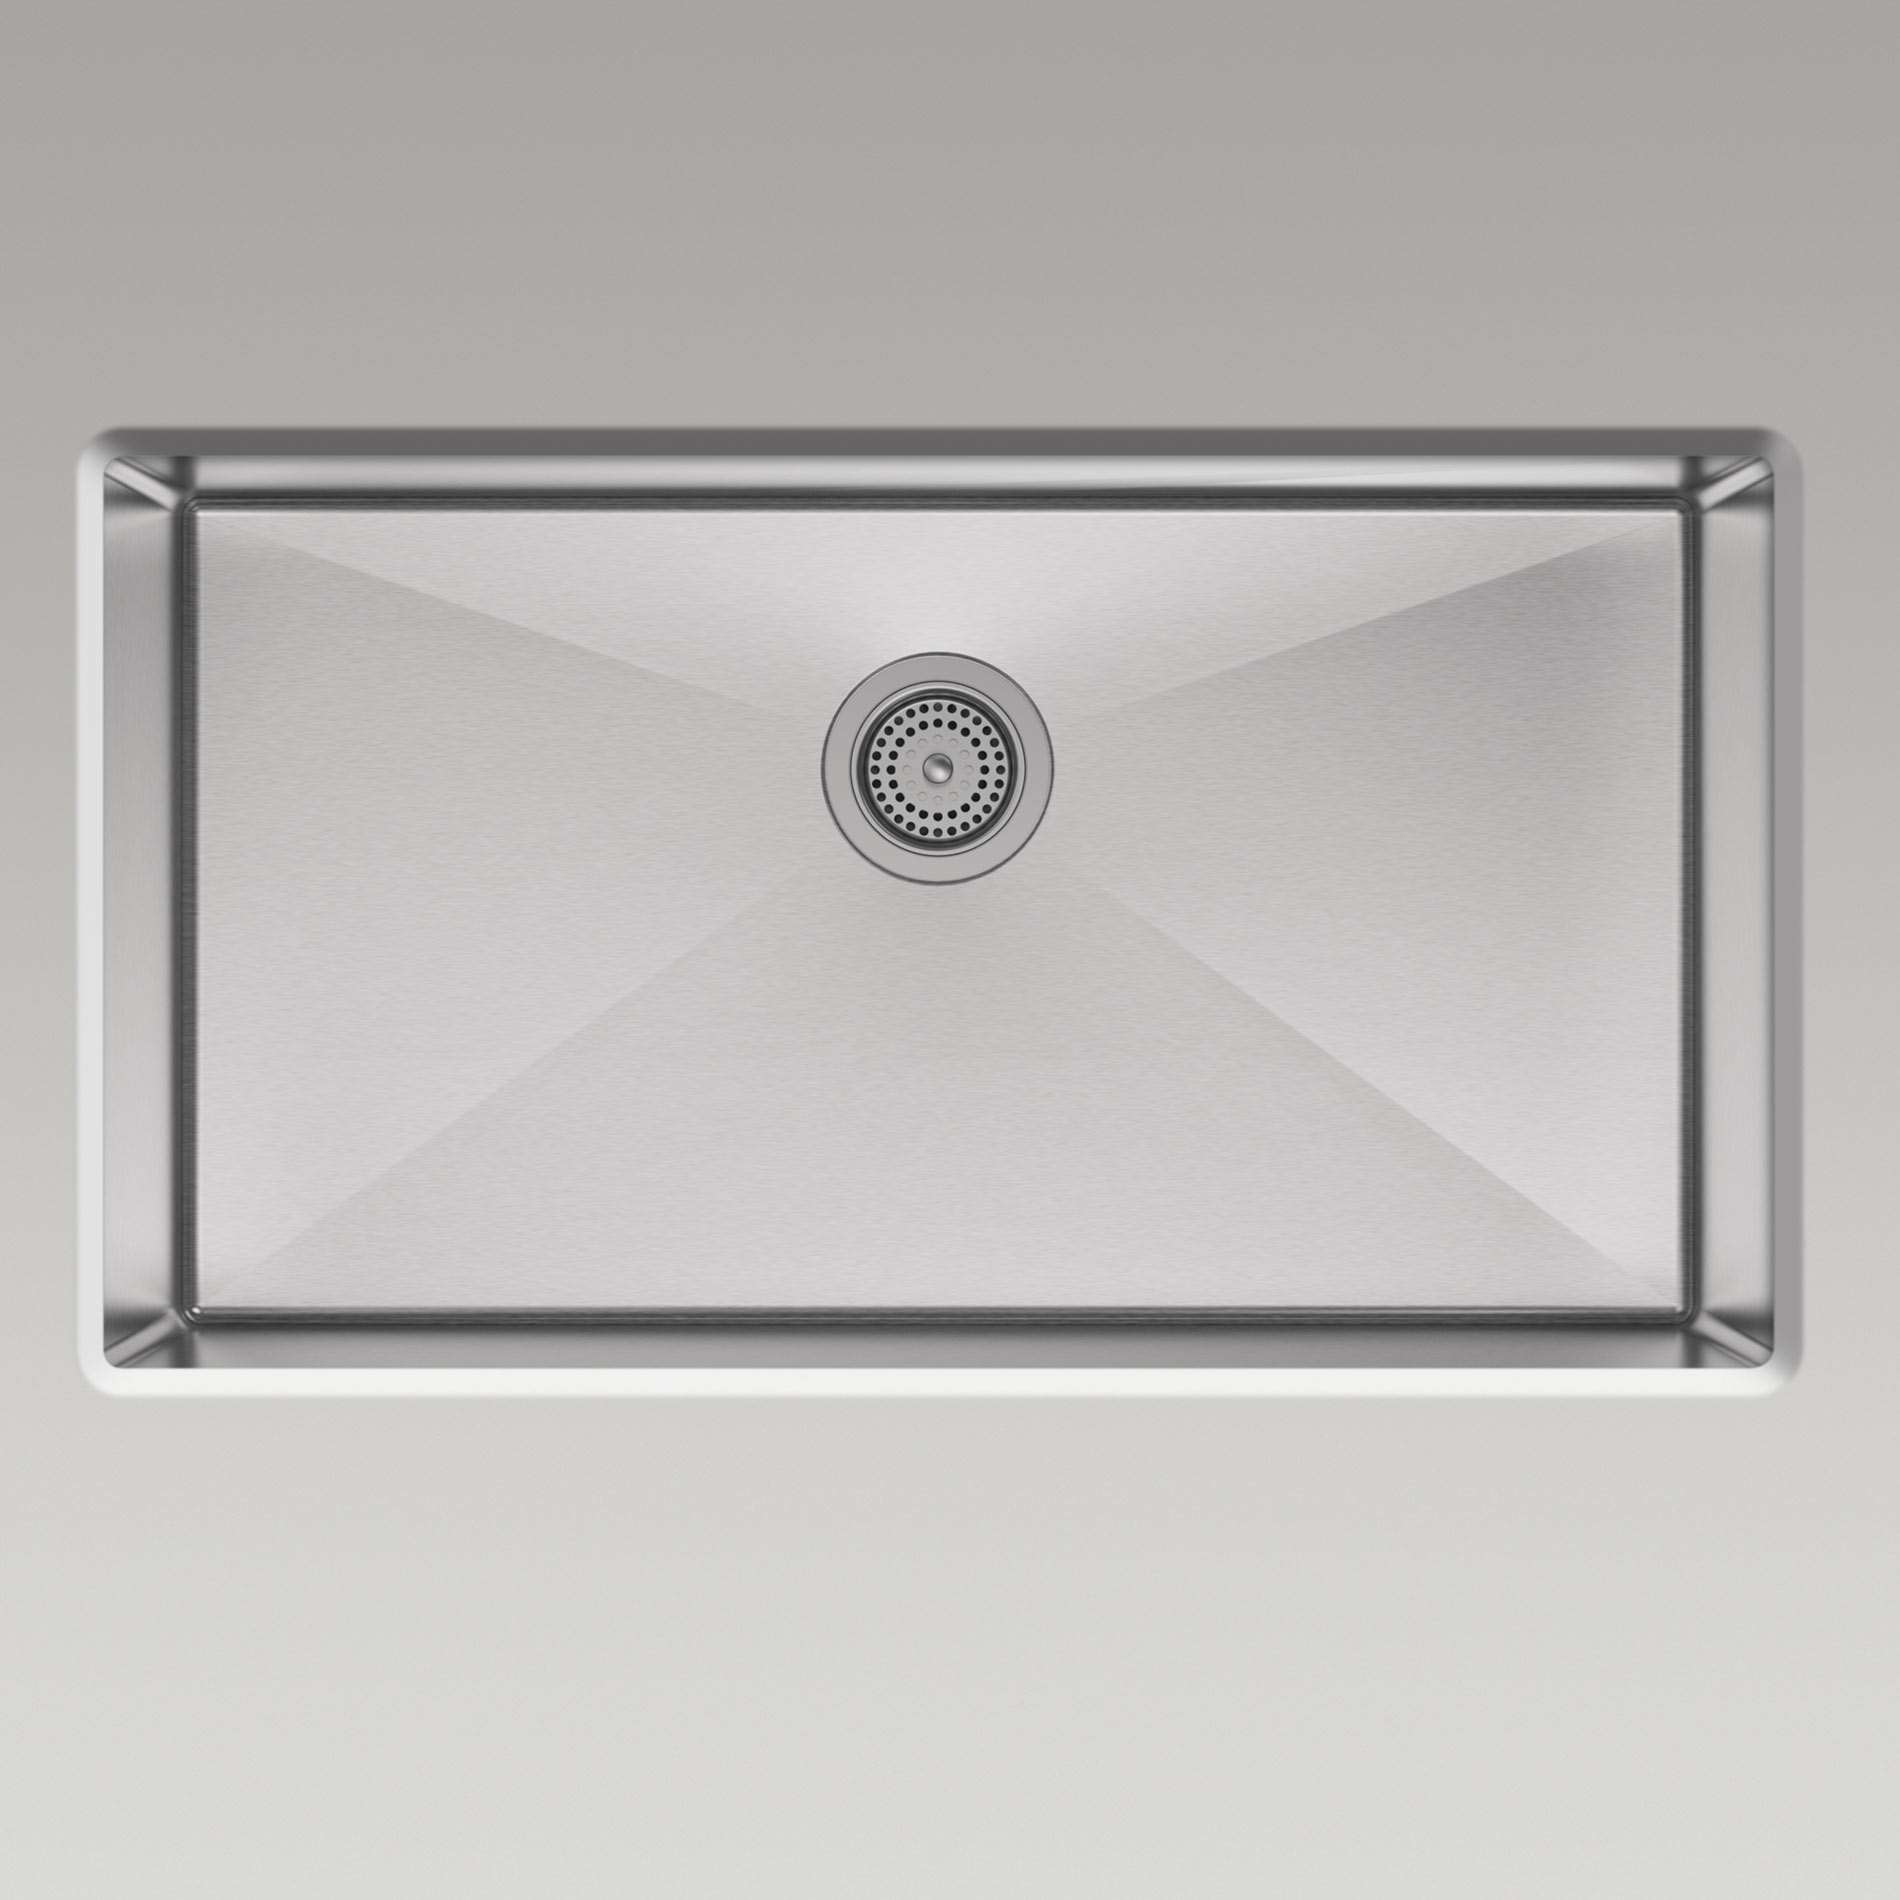 Kohler Strive Sink : Kohler: Strive 5285-NA Stainless Steel Sink - Kitchen Sinks & Taps